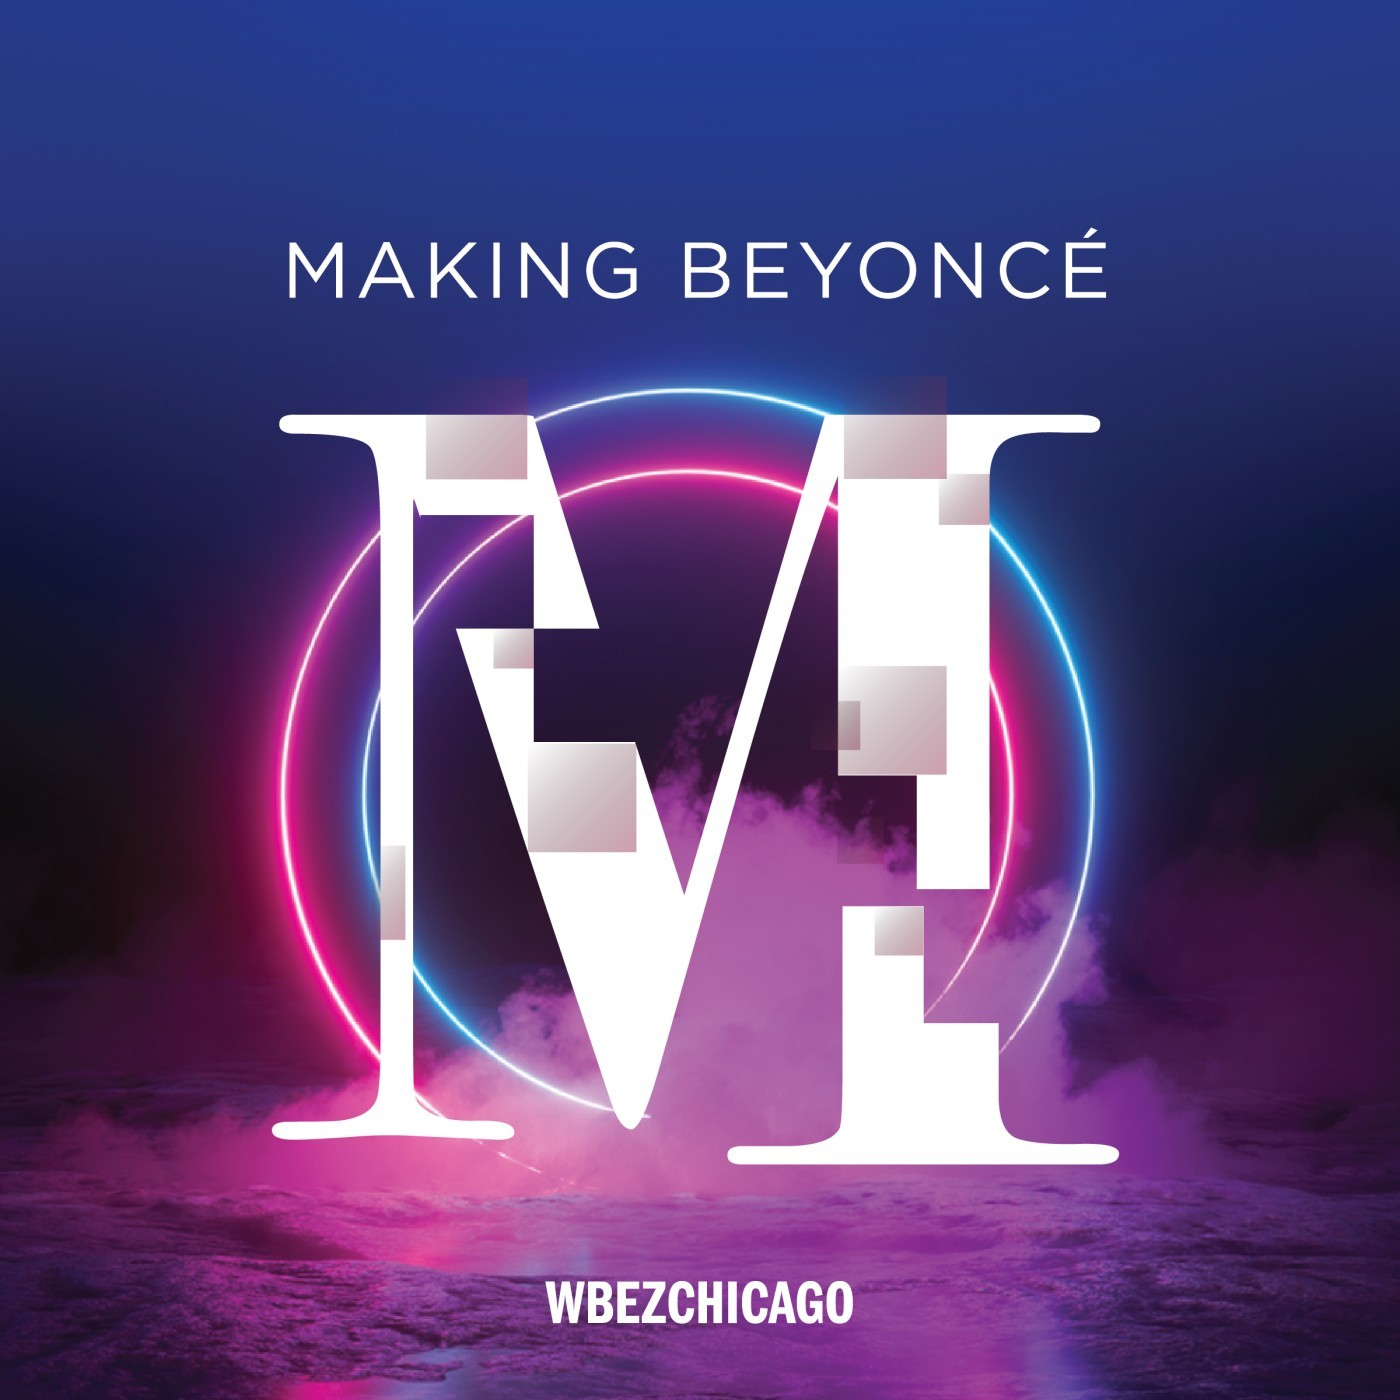 Making_beyonce_logo_1400x1400_small